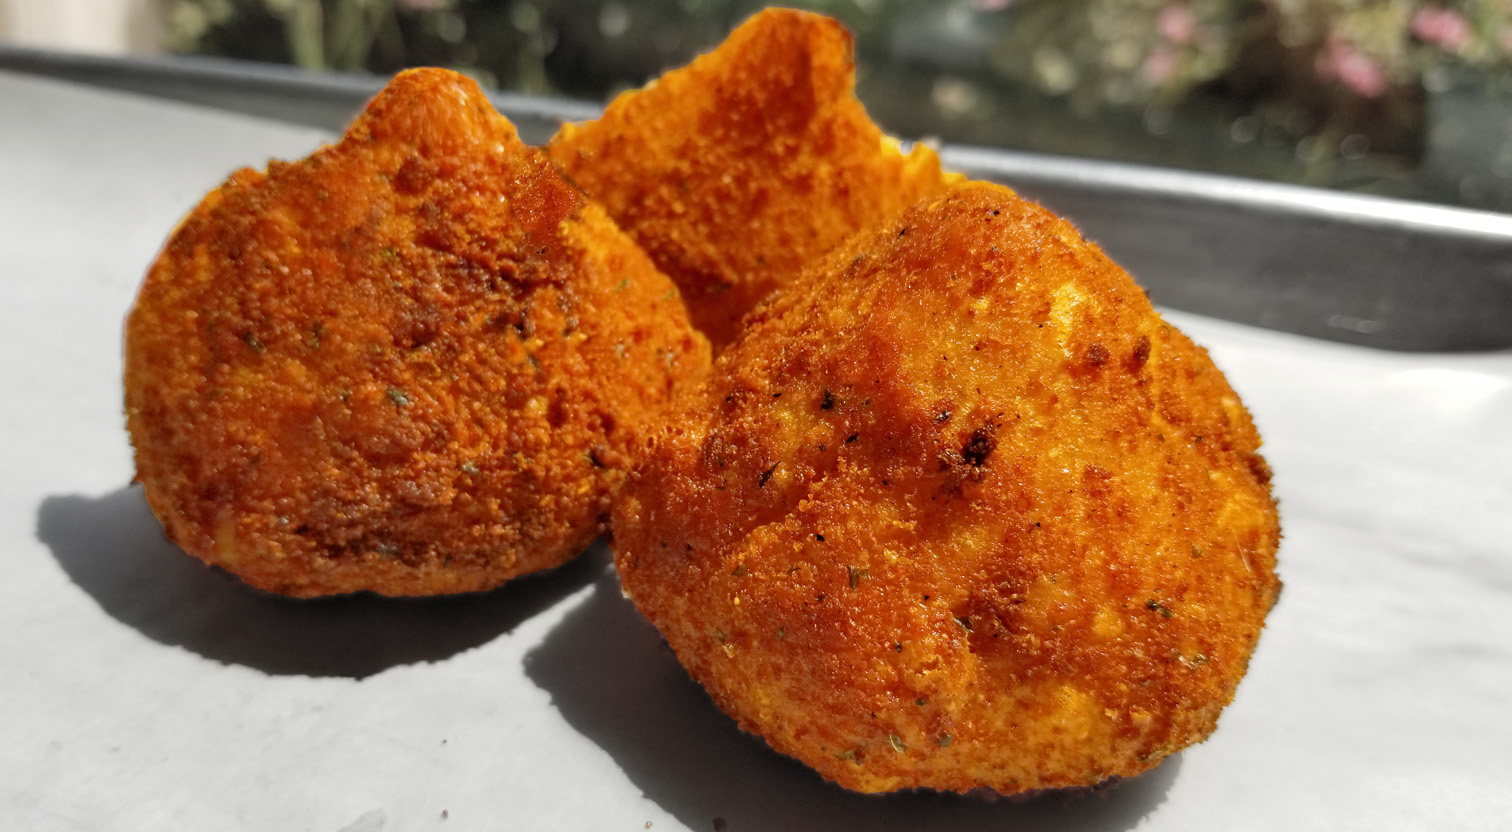 coxinhas unique food glutto digest